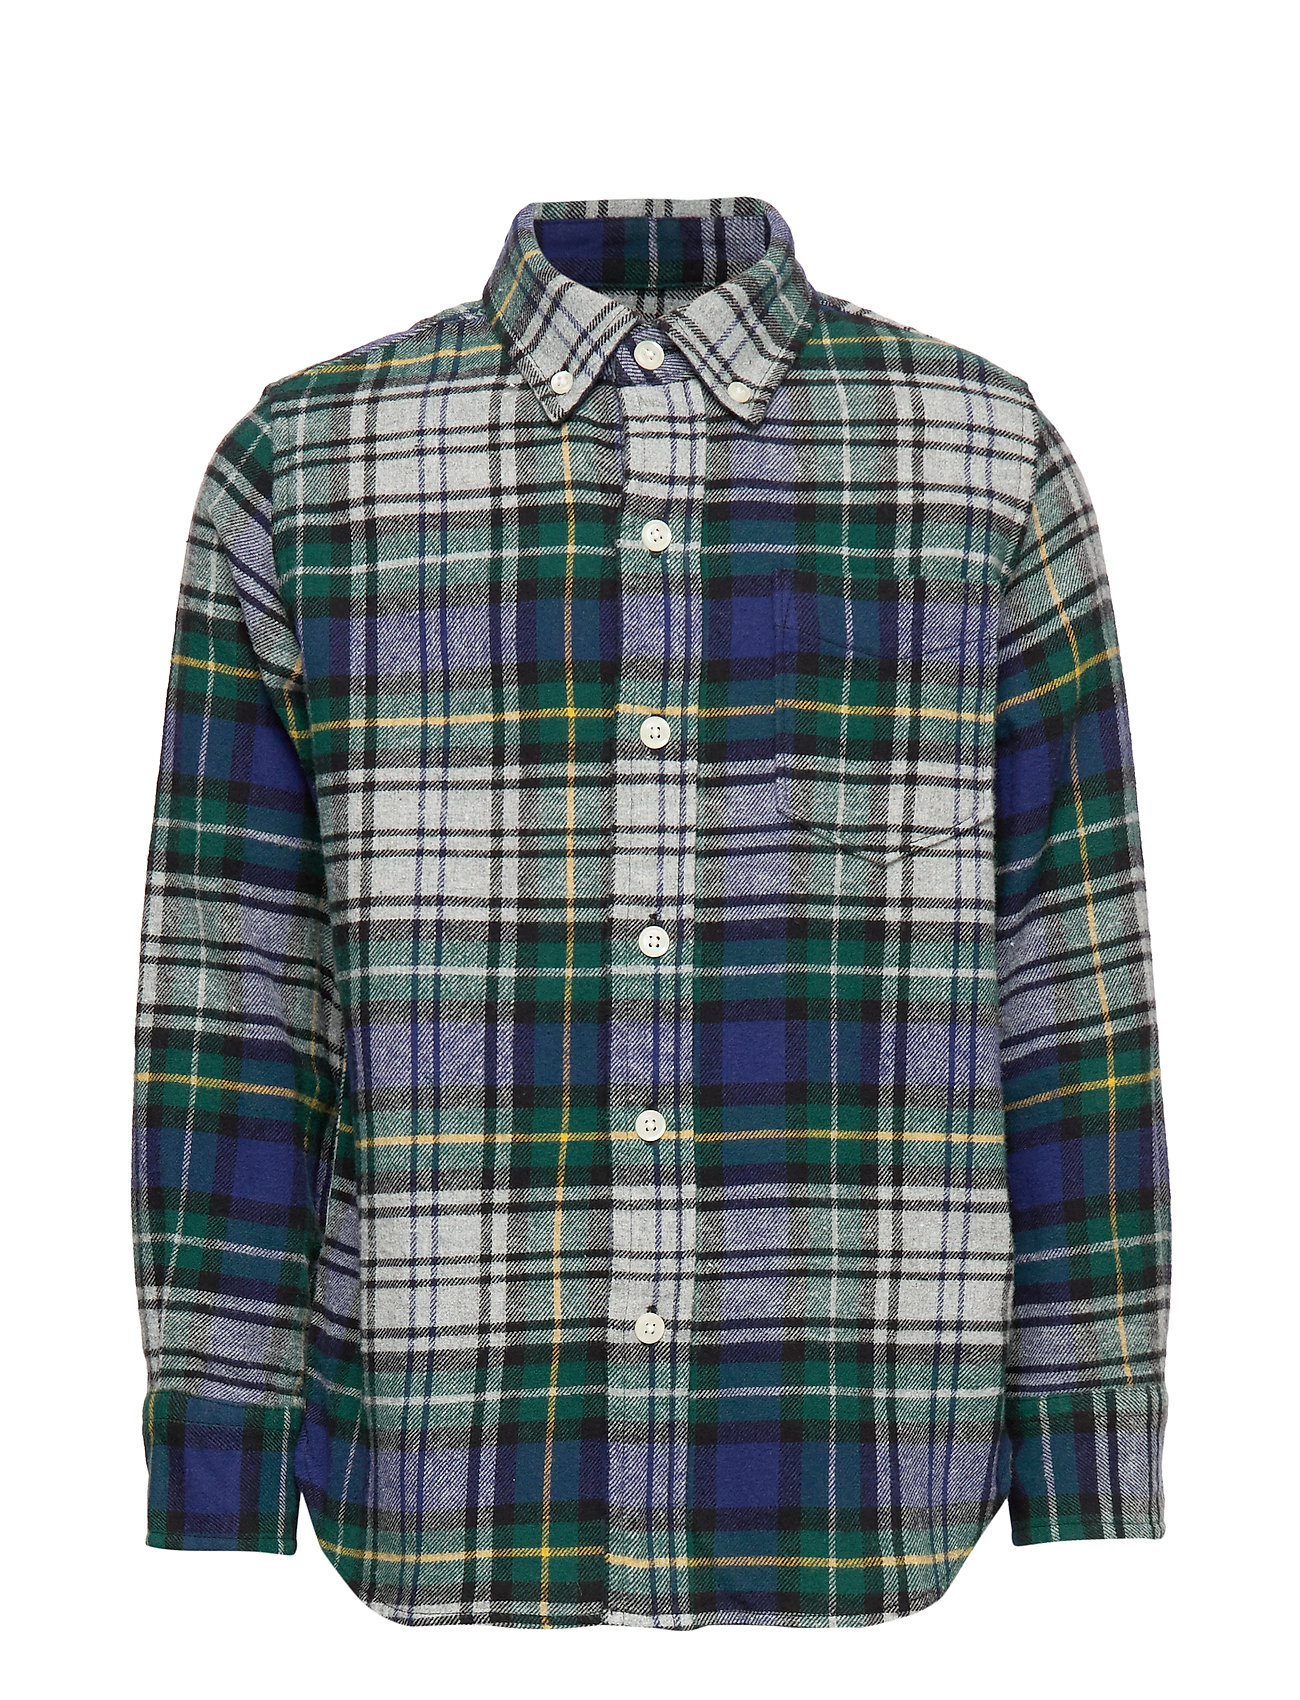 GAP Kids Flannel Shirt - GREY BLUE PLAID